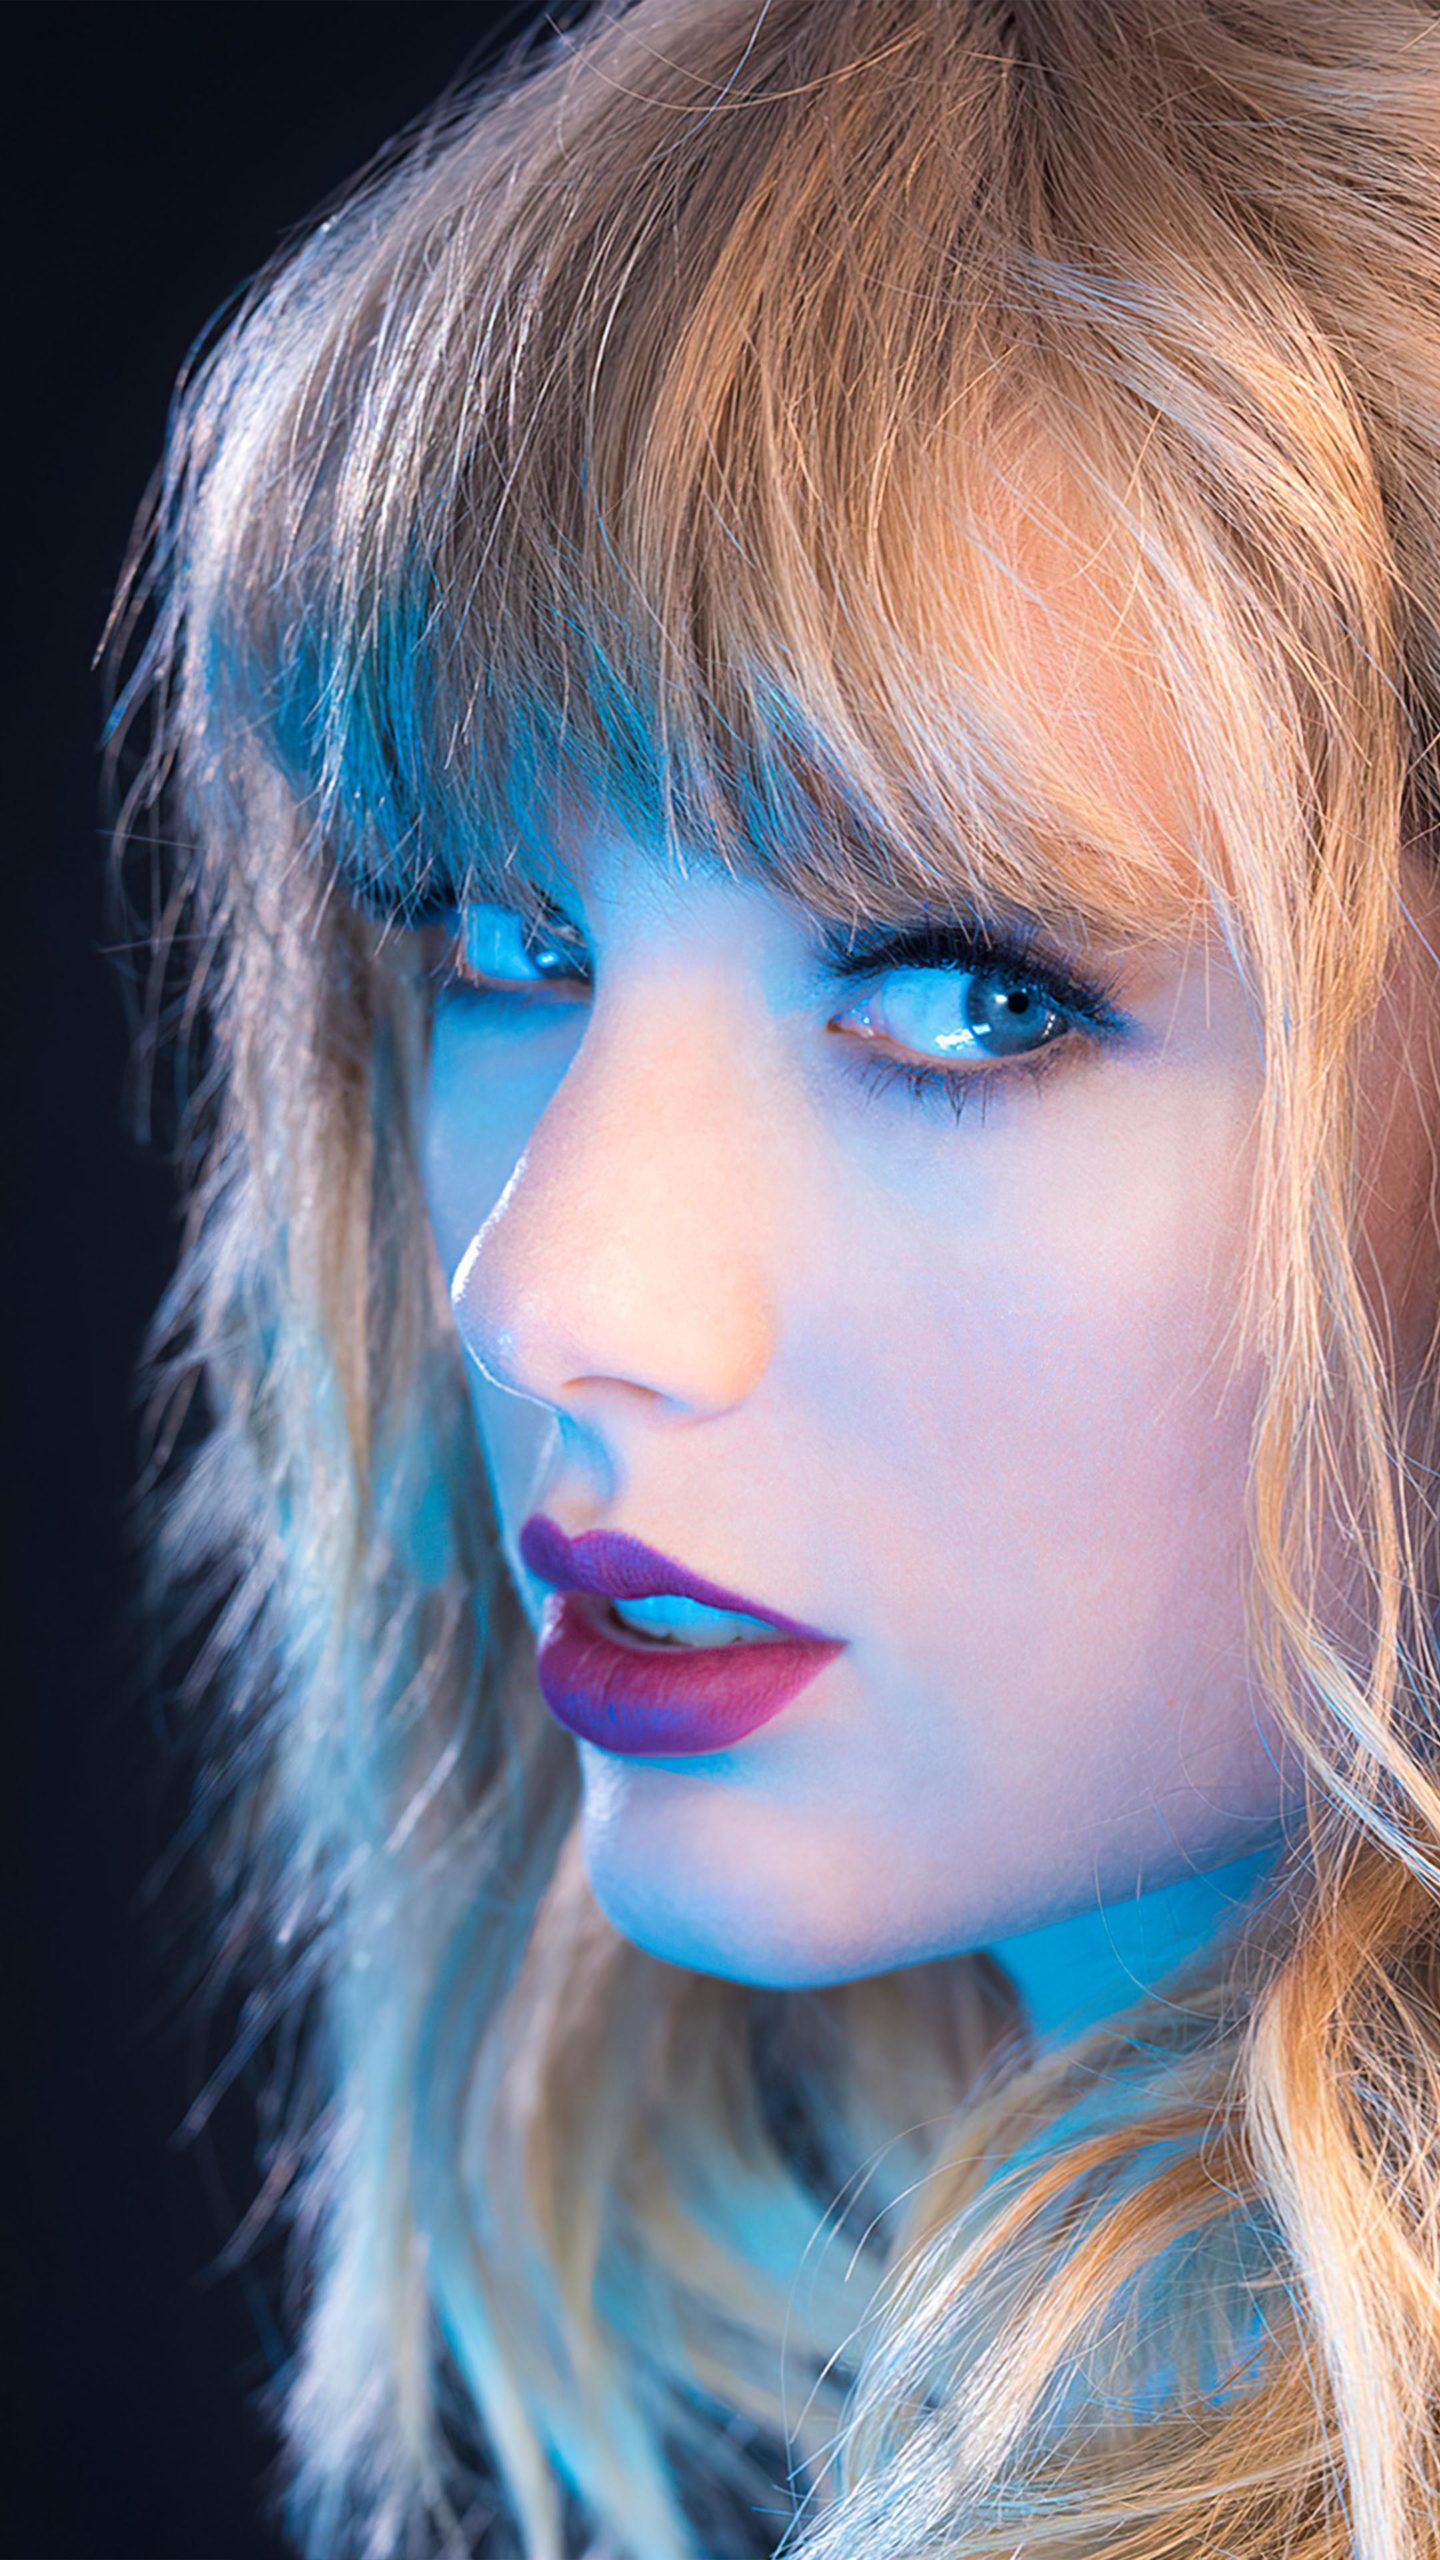 Taylor Swift HD Mobile 4k Wallpapers - Wallpaper Cave